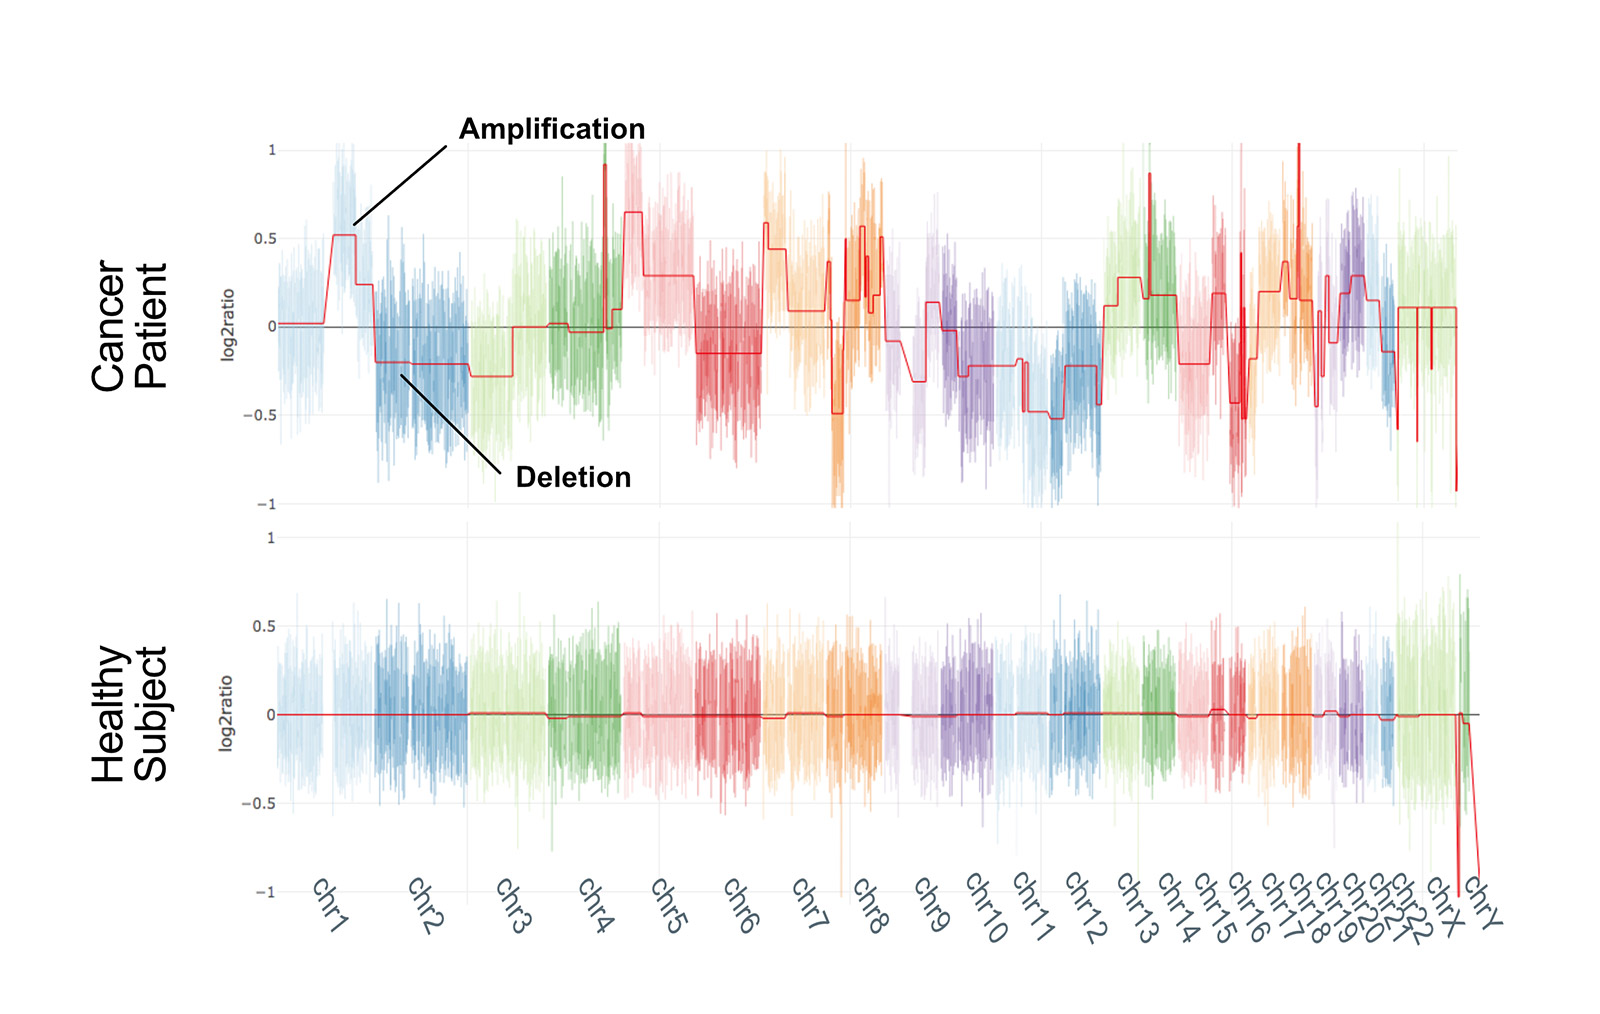 Whole genome CNV profiles of research samples from cancer patients and healthy individuals